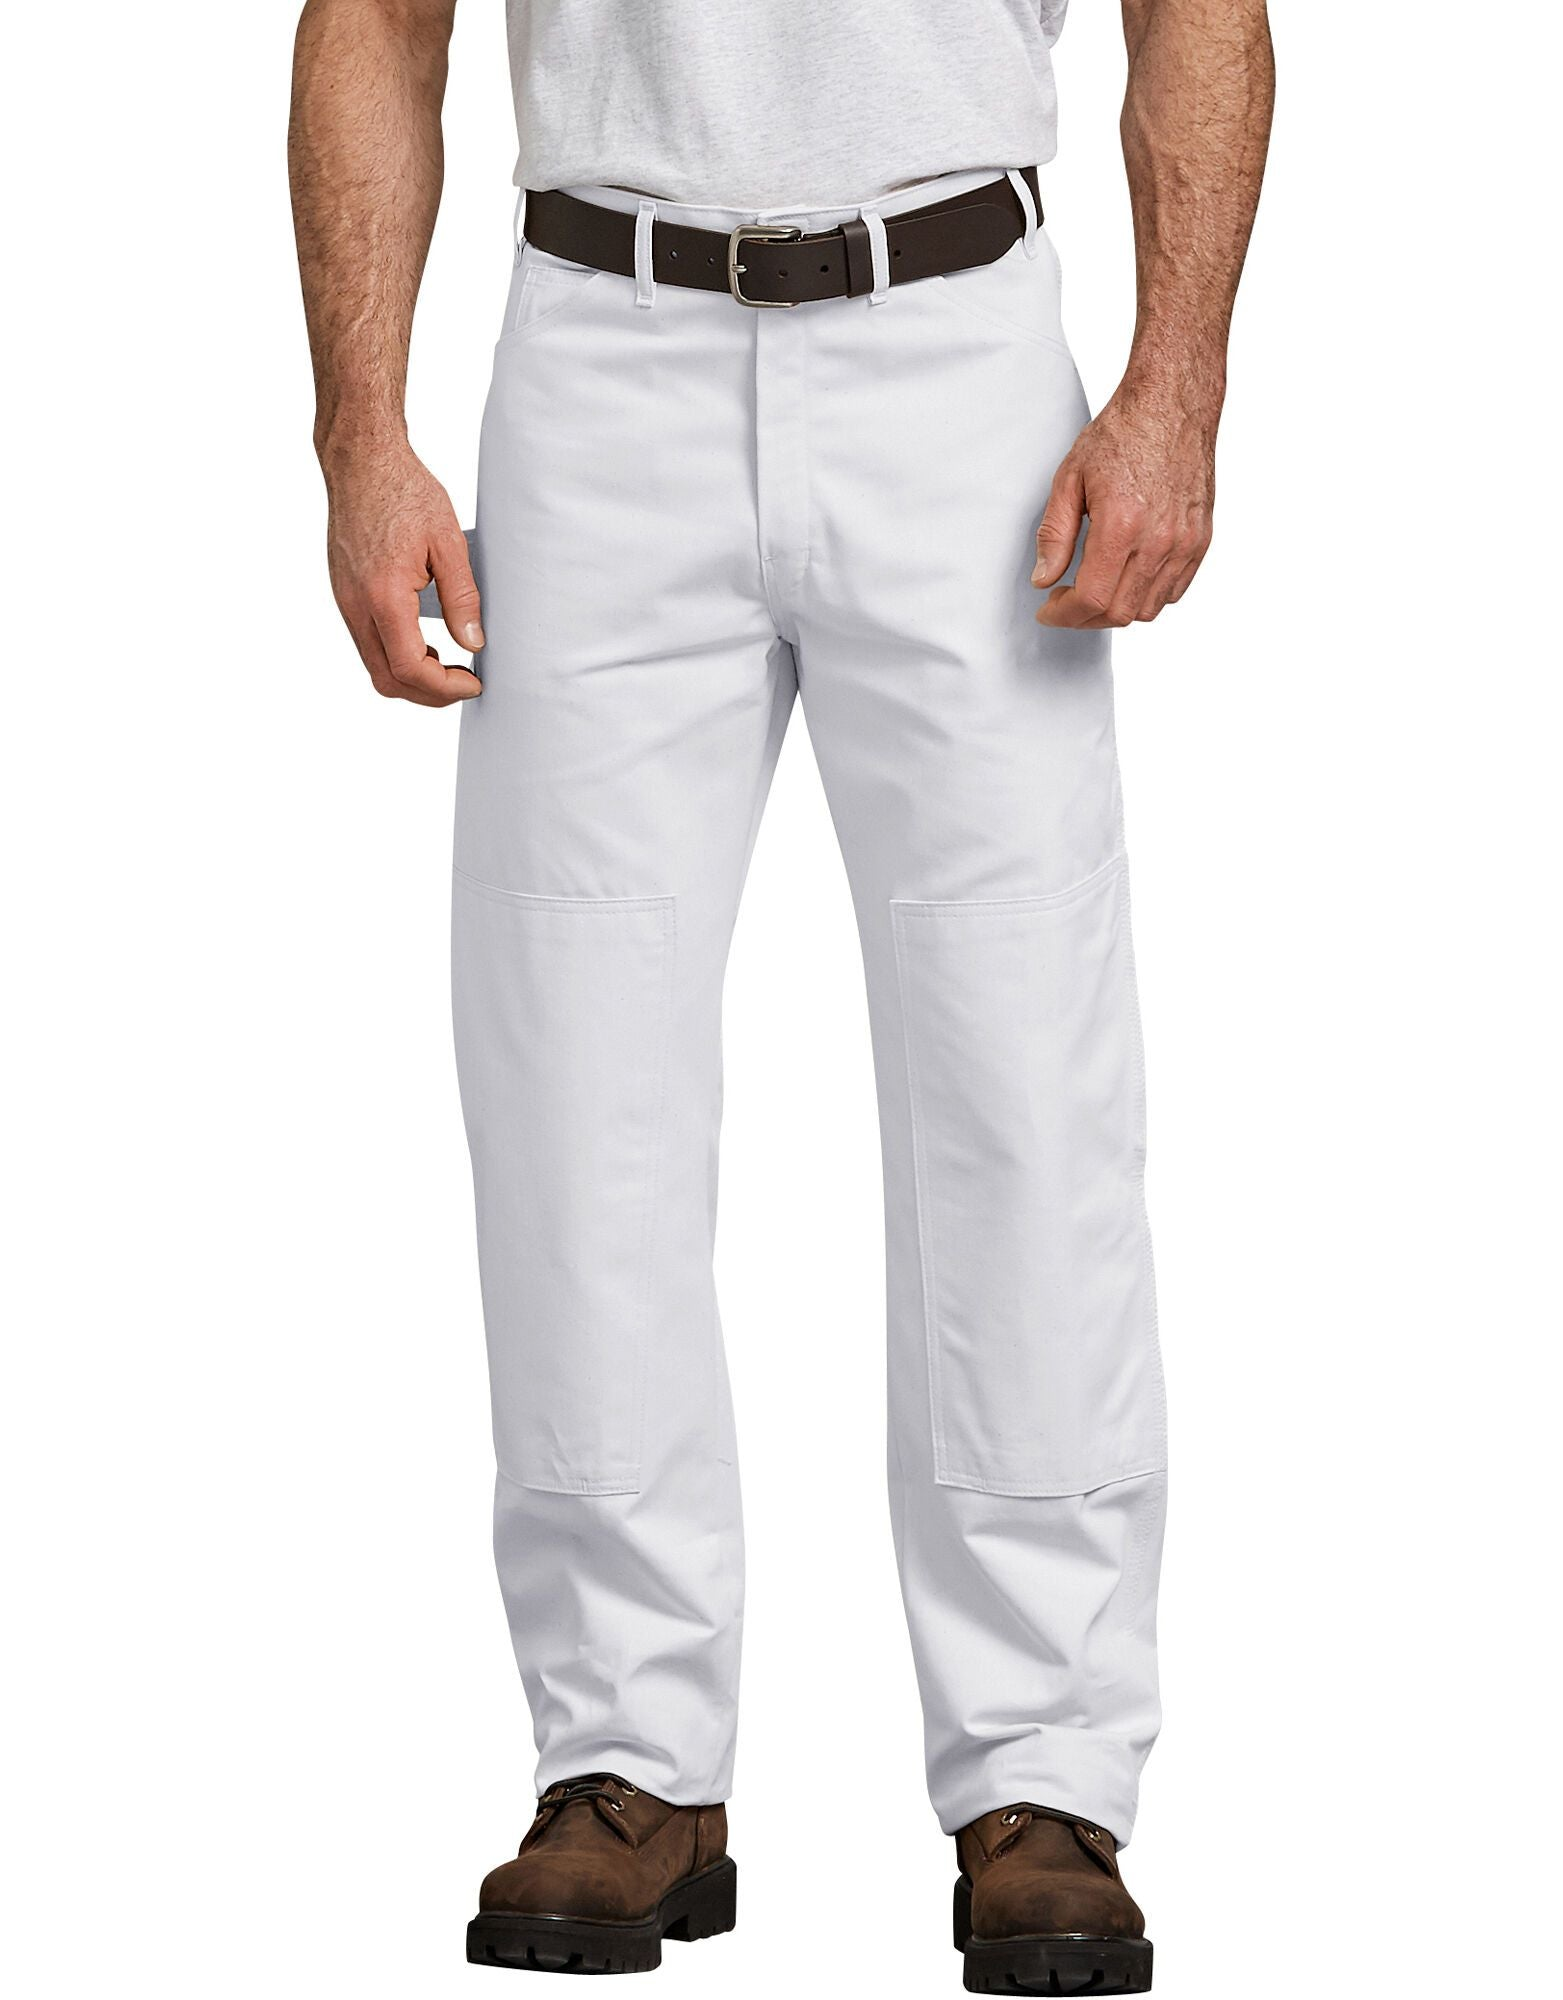 White Double Knee Pants